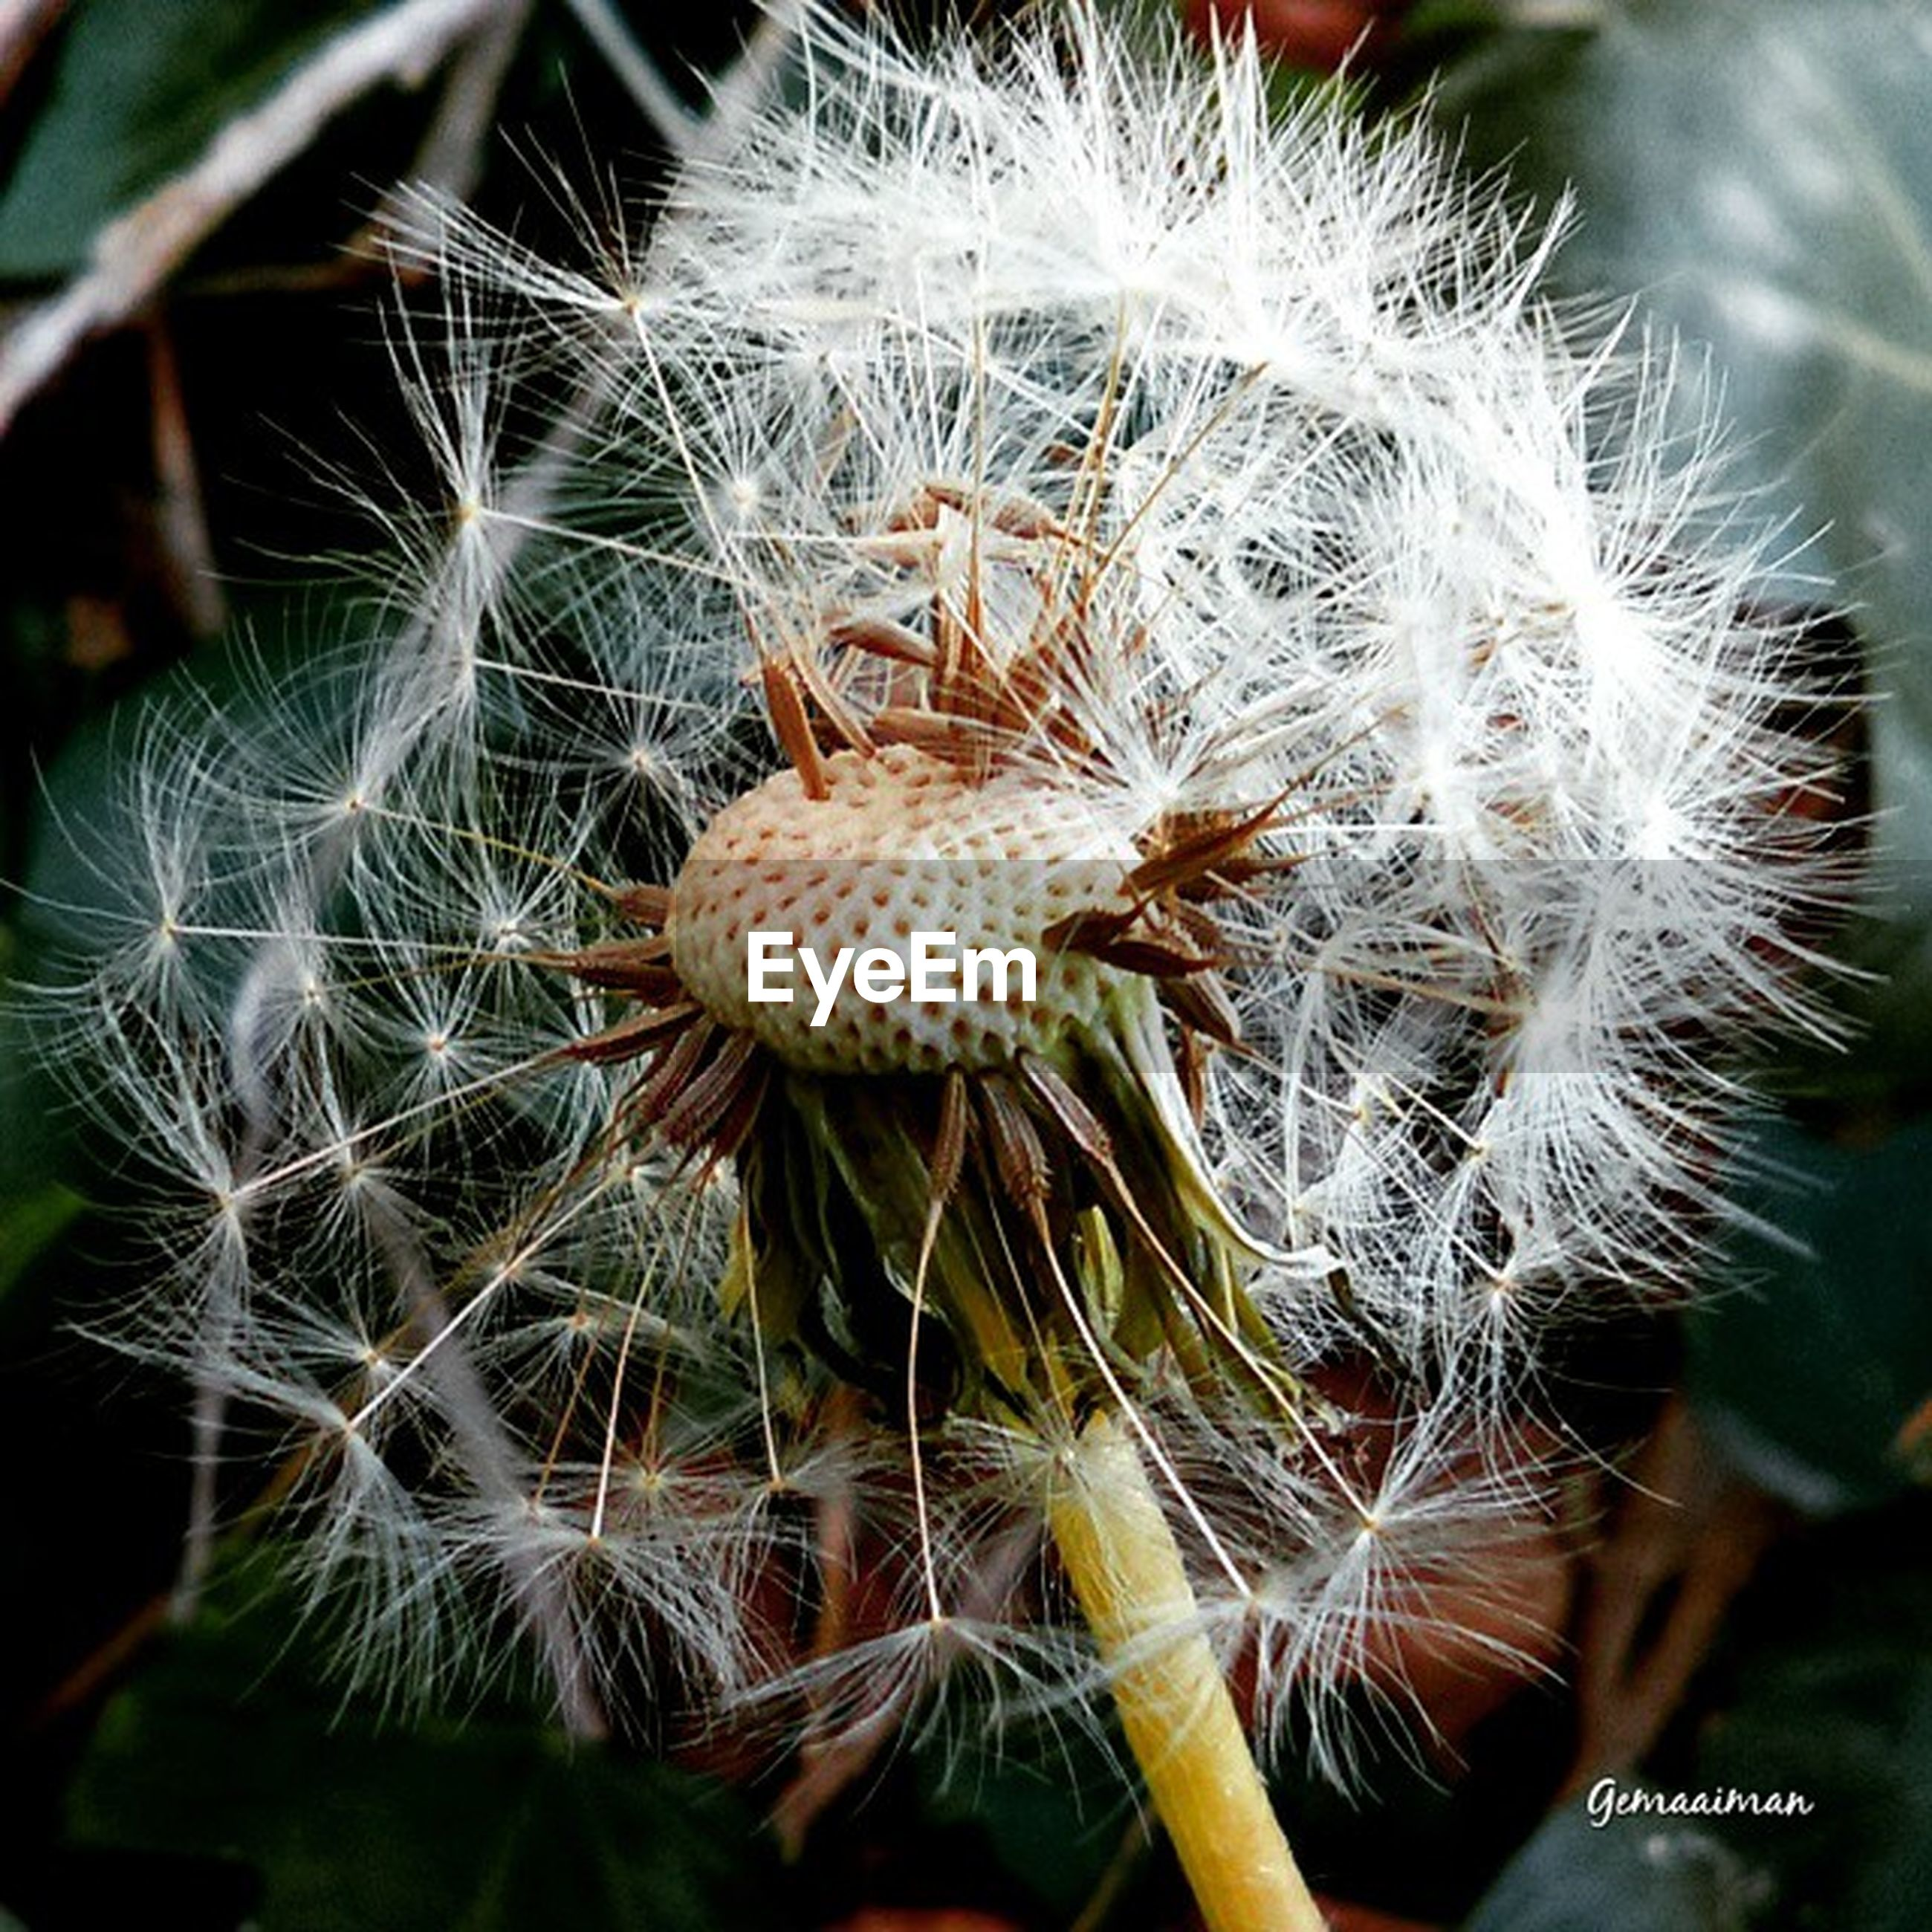 growth, flower, dandelion, close-up, fragility, freshness, plant, nature, flower head, focus on foreground, beauty in nature, thorn, uncultivated, stem, softness, spiked, seed, cactus, dandelion seed, wildflower